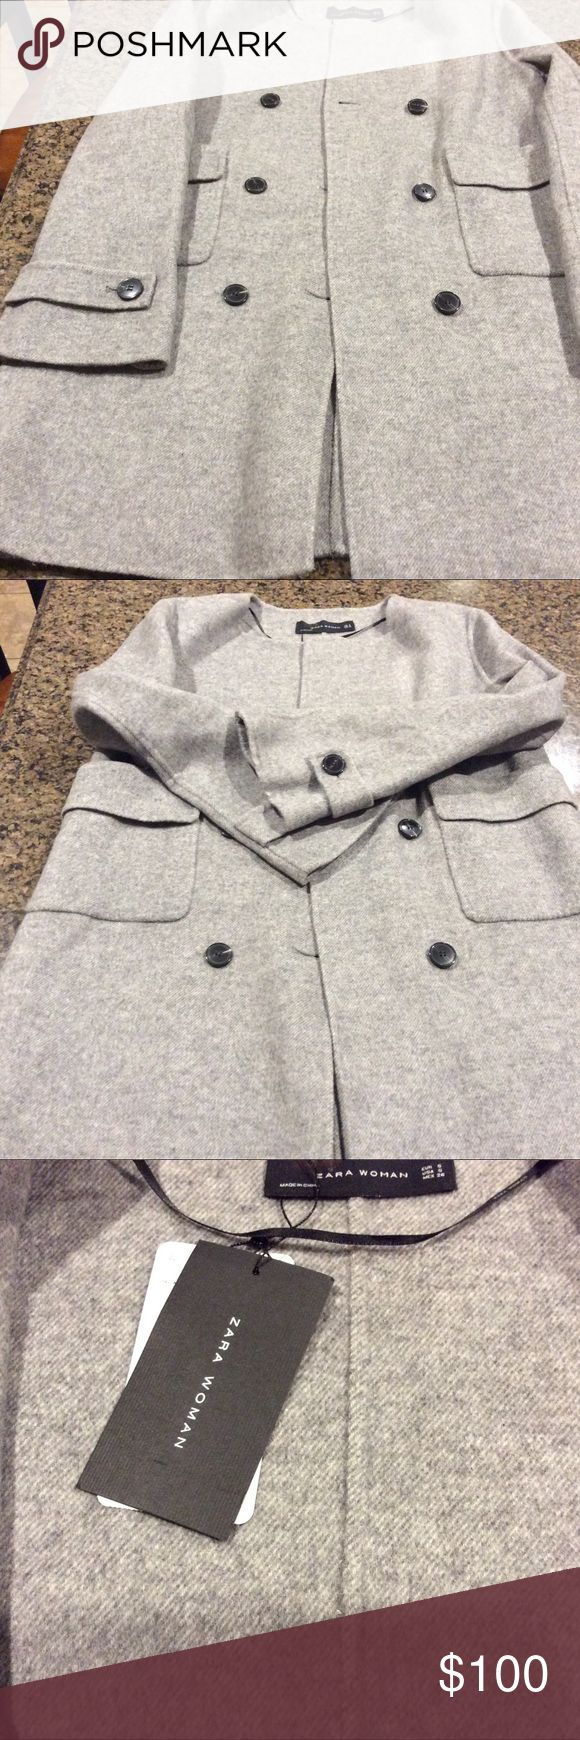 Zara Woman Peacoat wool gray Size S This soft to the touch jacket is both stylish and warm. It's new with tags and in great condition. If you have any questions feel free to contact me. Zara Jackets & Coats Pea Coats